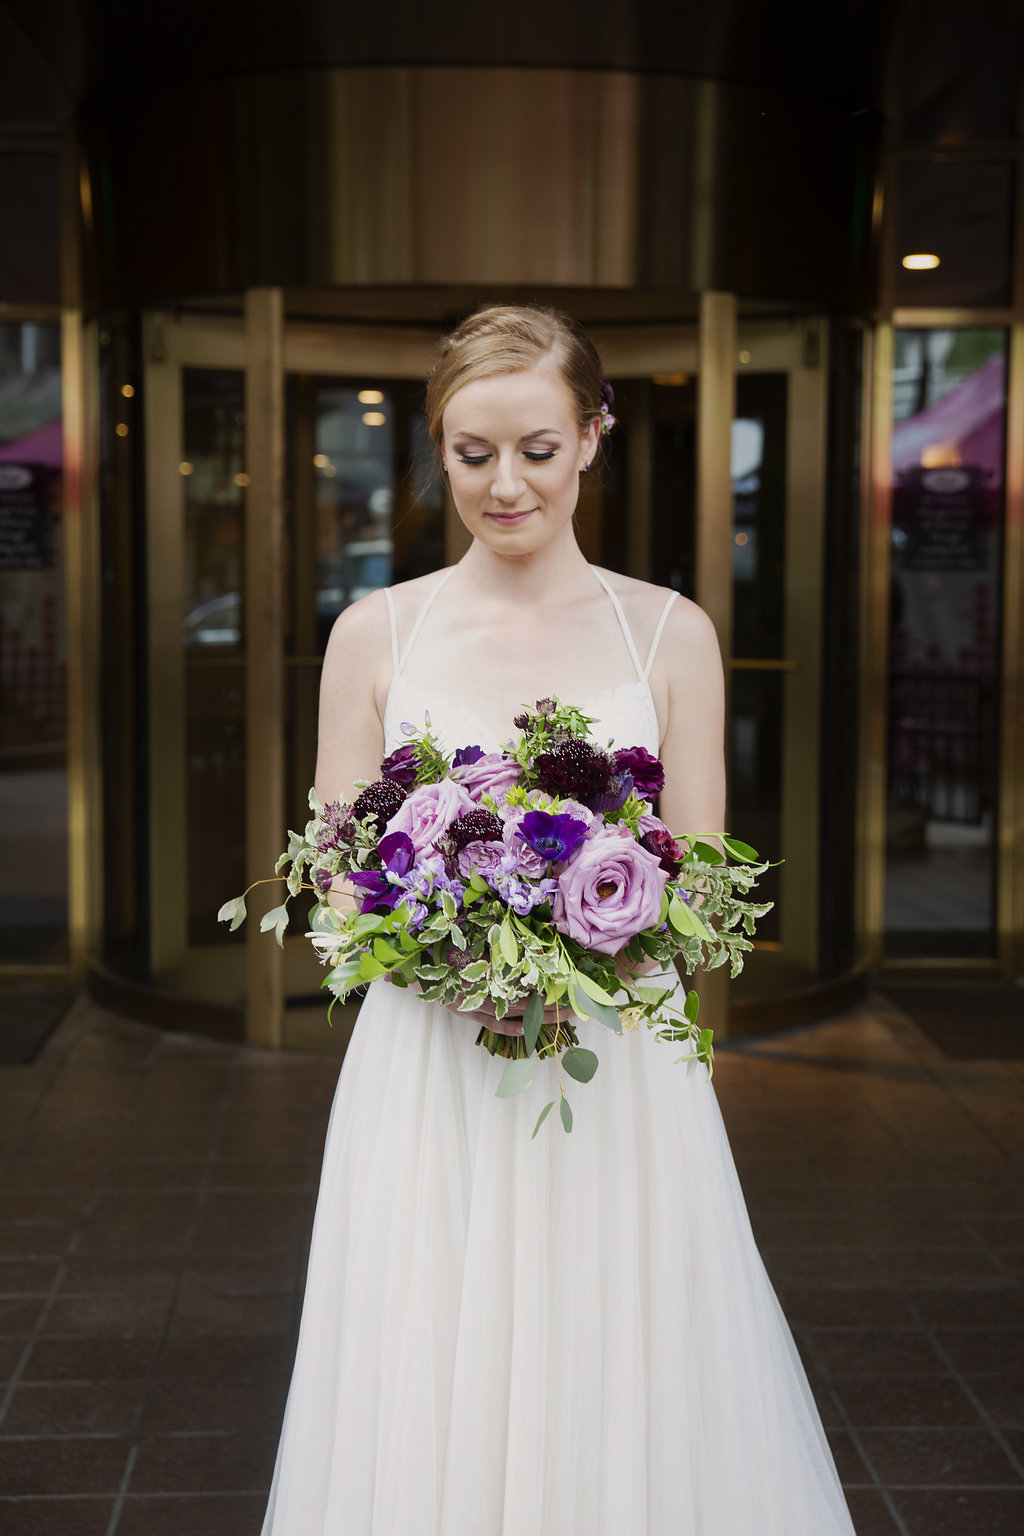 Bride shows off stunning bridal bouquet featuring purple flowers created by Whats Up Buttercup